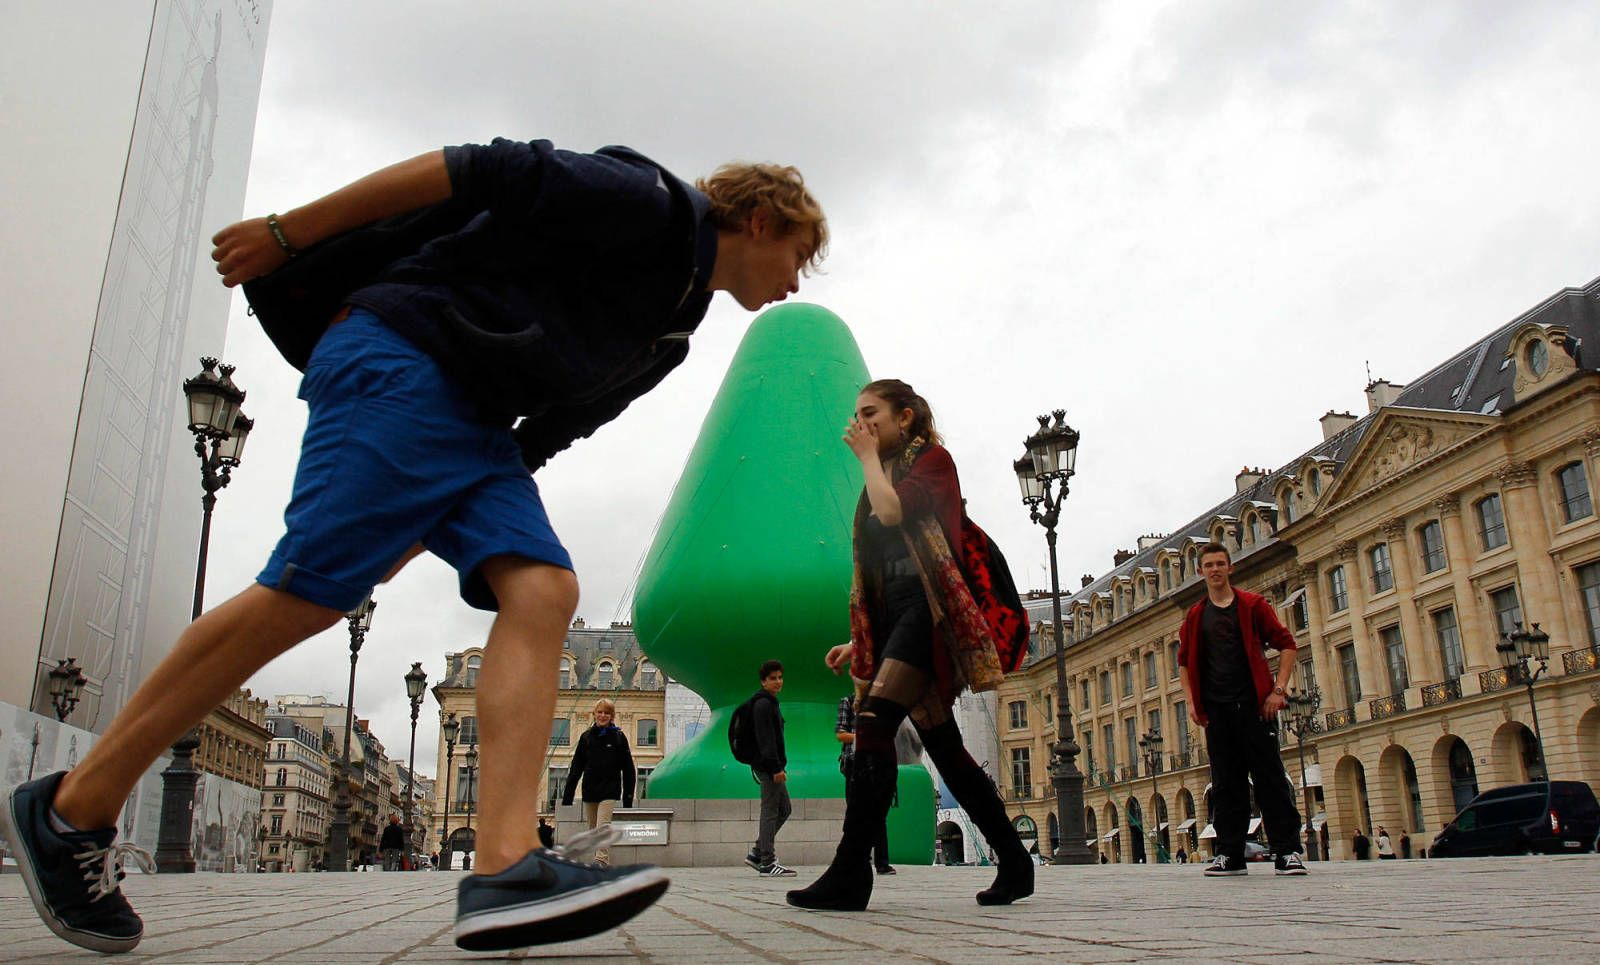 Paris have erected a giant butt plug instead of a Christmas tree ...